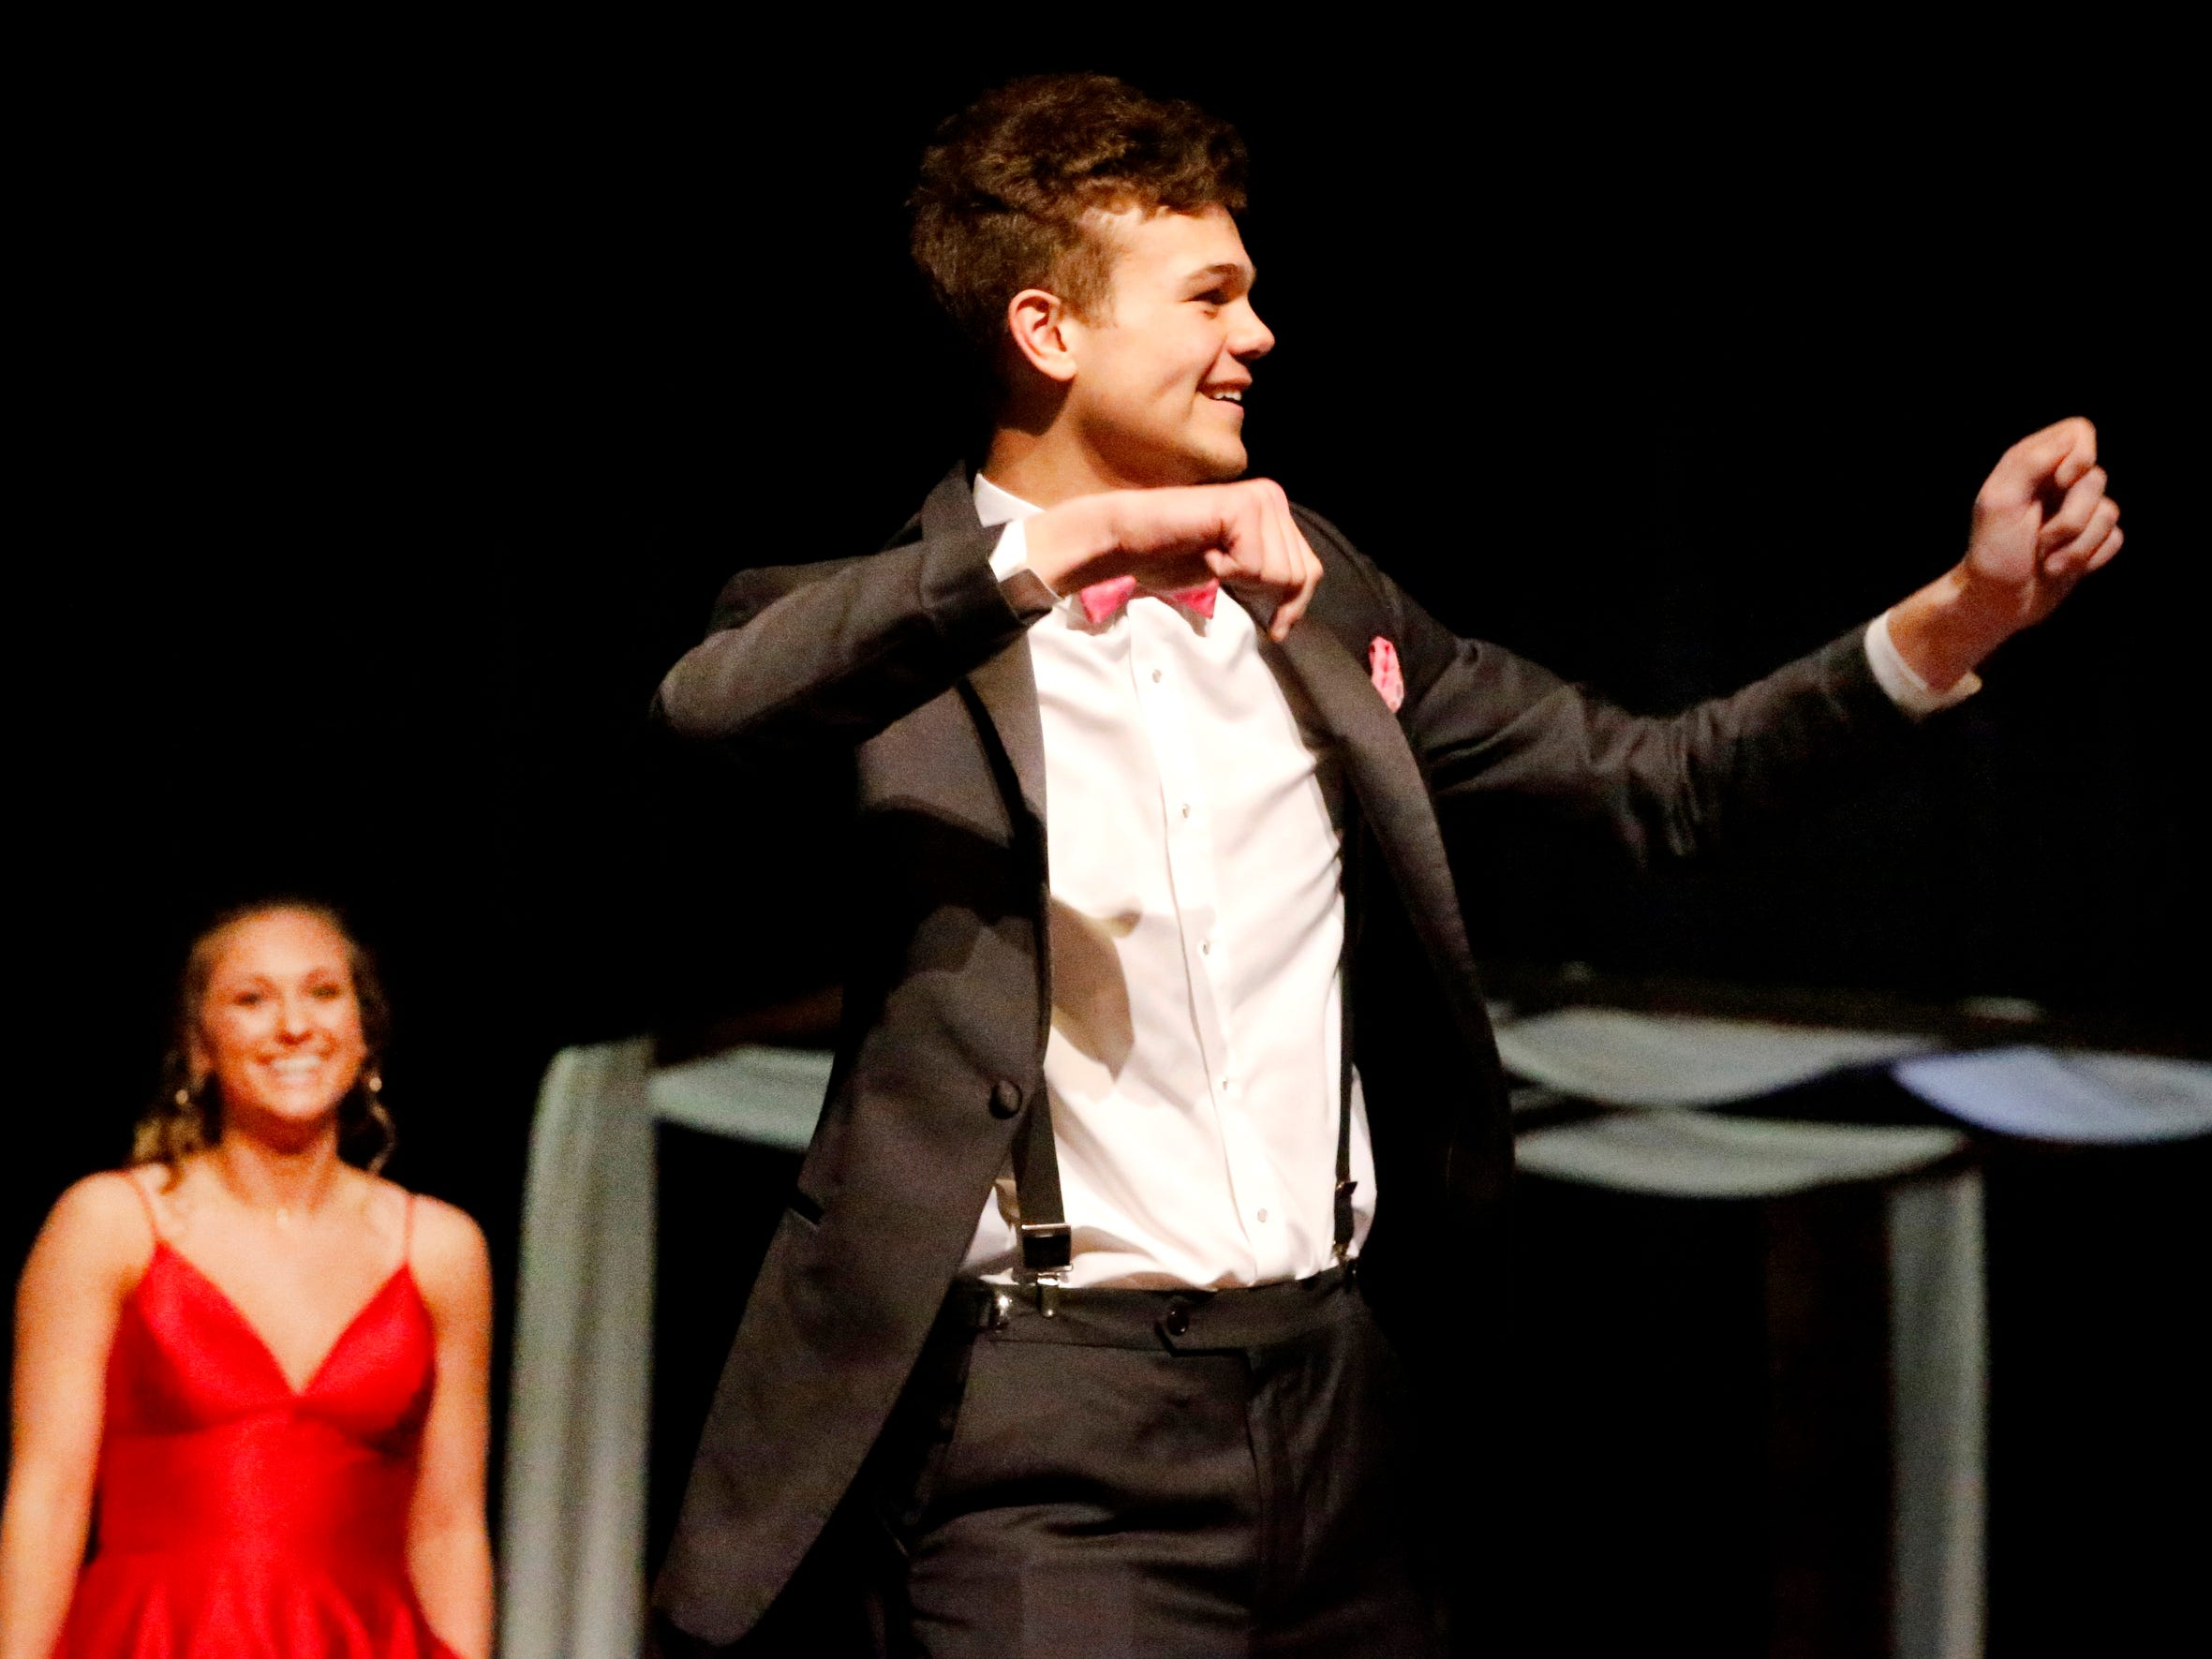 Colin Mathis pretends to pull back a bow at the end of the runway at the Siegel Prom Fashion show on Thursday, Feb. 14, 2019, as he shows off the latest in prom attire.